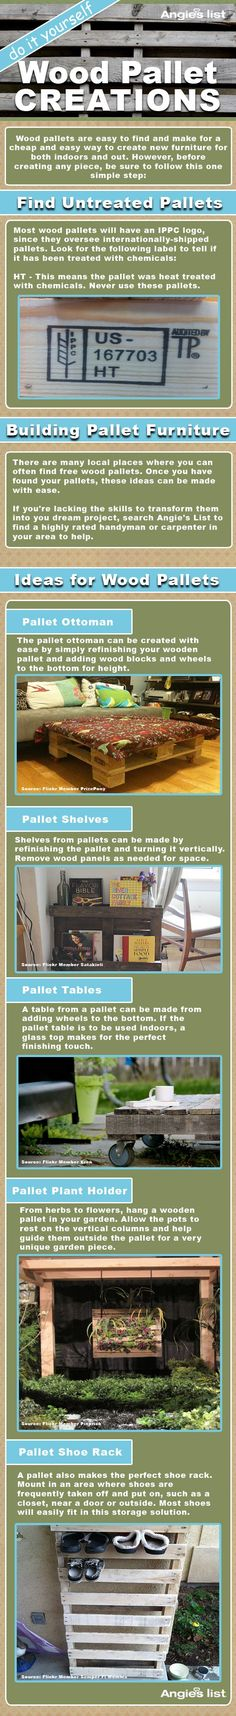 Wood Pallet Creations | Angies List